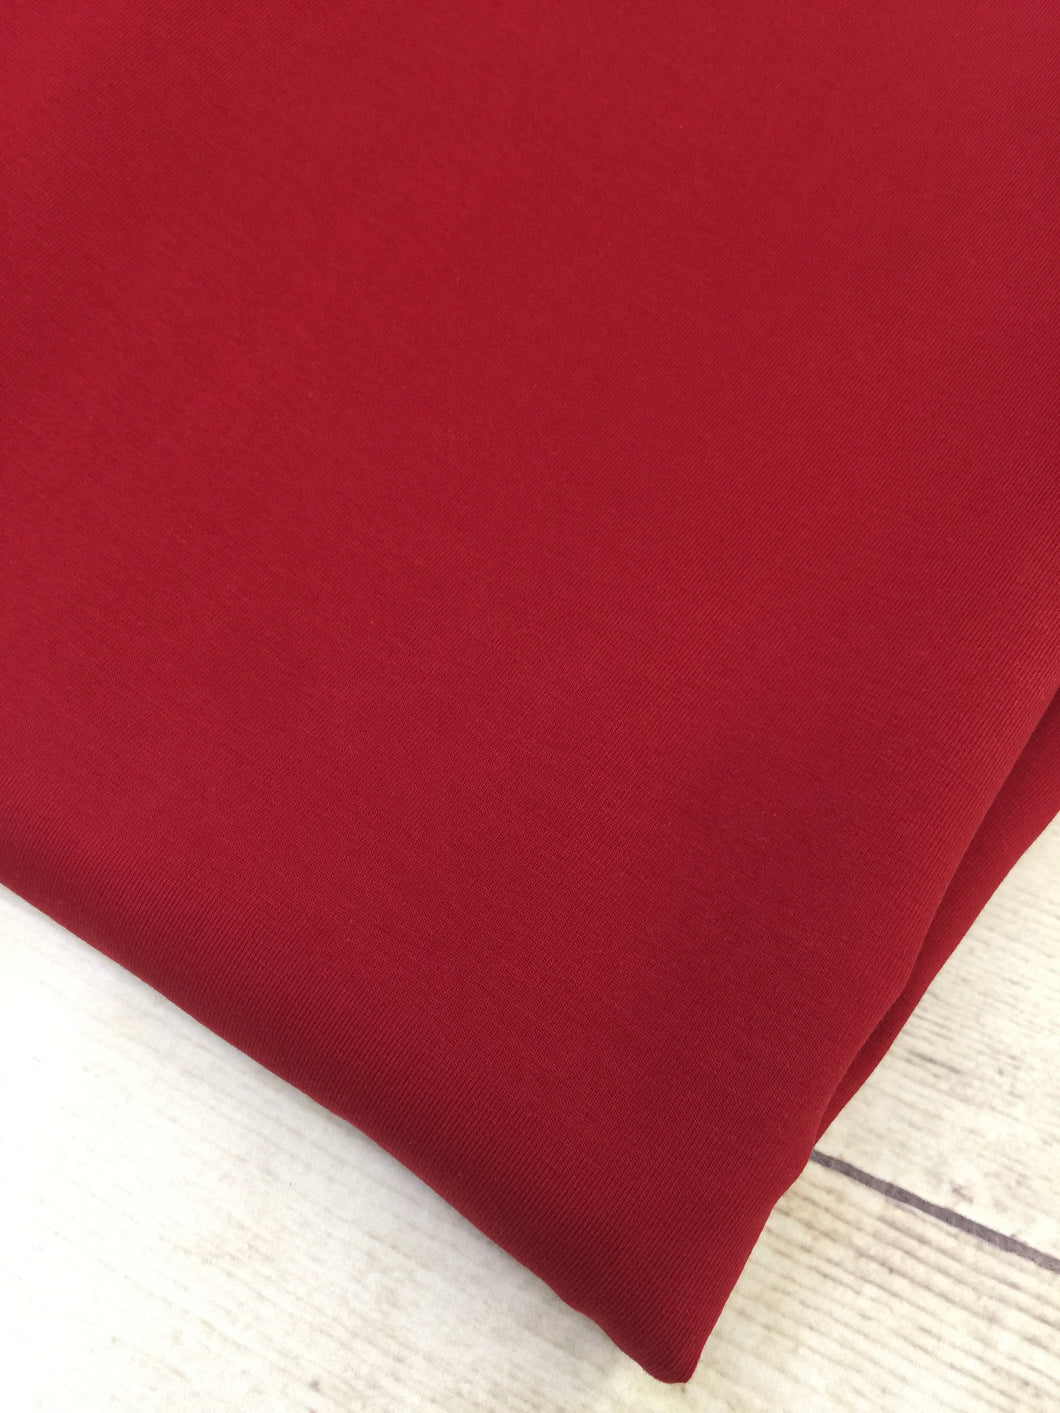 Cranberry Cotton Lycra Jersey 12oz